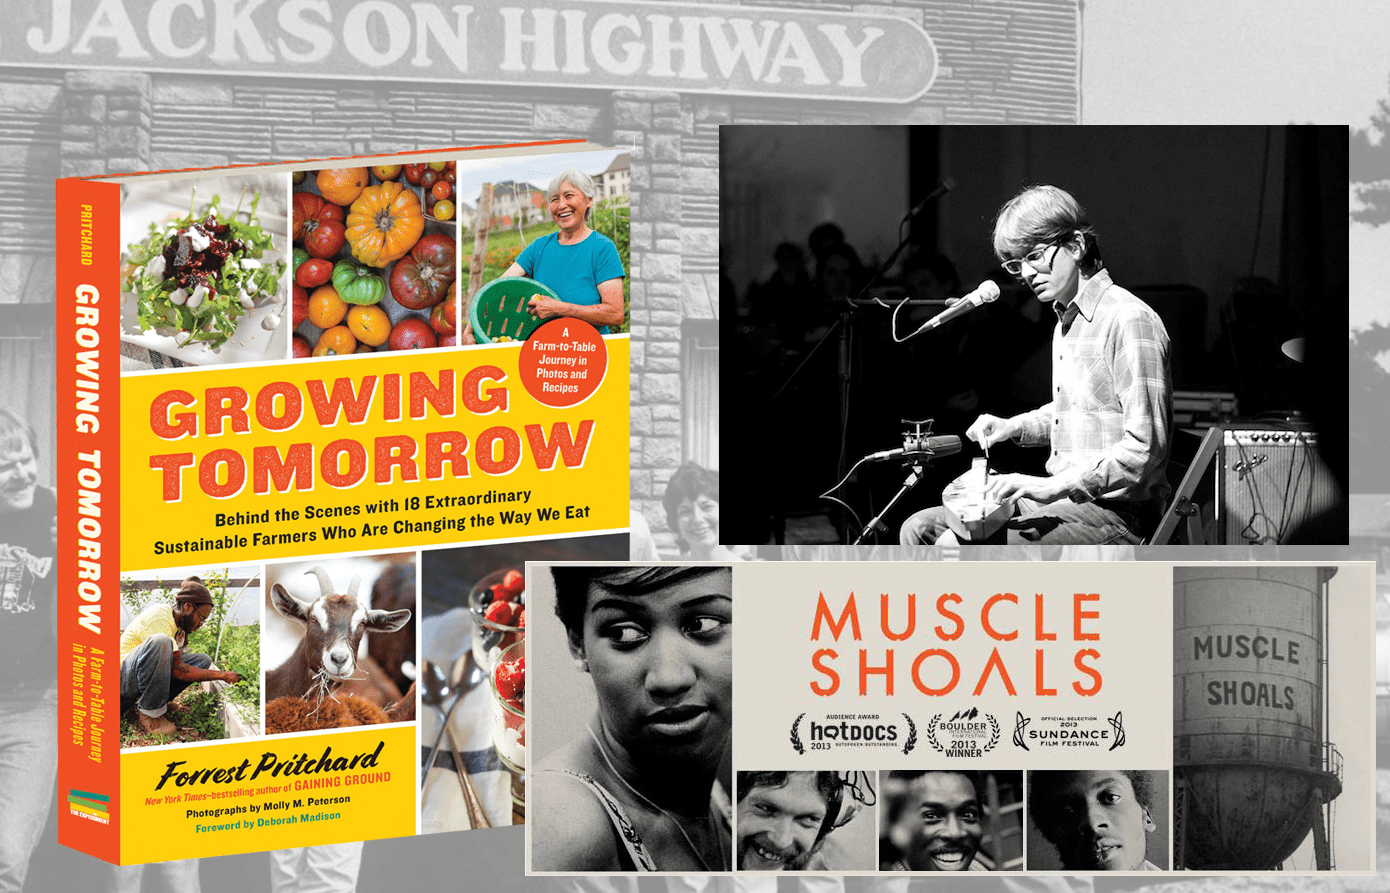 "Some of the ""best of"" selections of the new Rural Roundtable, a co-production of the Daily Yonder and National Rural Assembly: the book by Forrest Pritchard, the documentary on the rock and roll history of Muscle Shoals by director Greg 'Freddy' Camalier, and (top right)  musician Joe O'Connell of Elephant Micah."